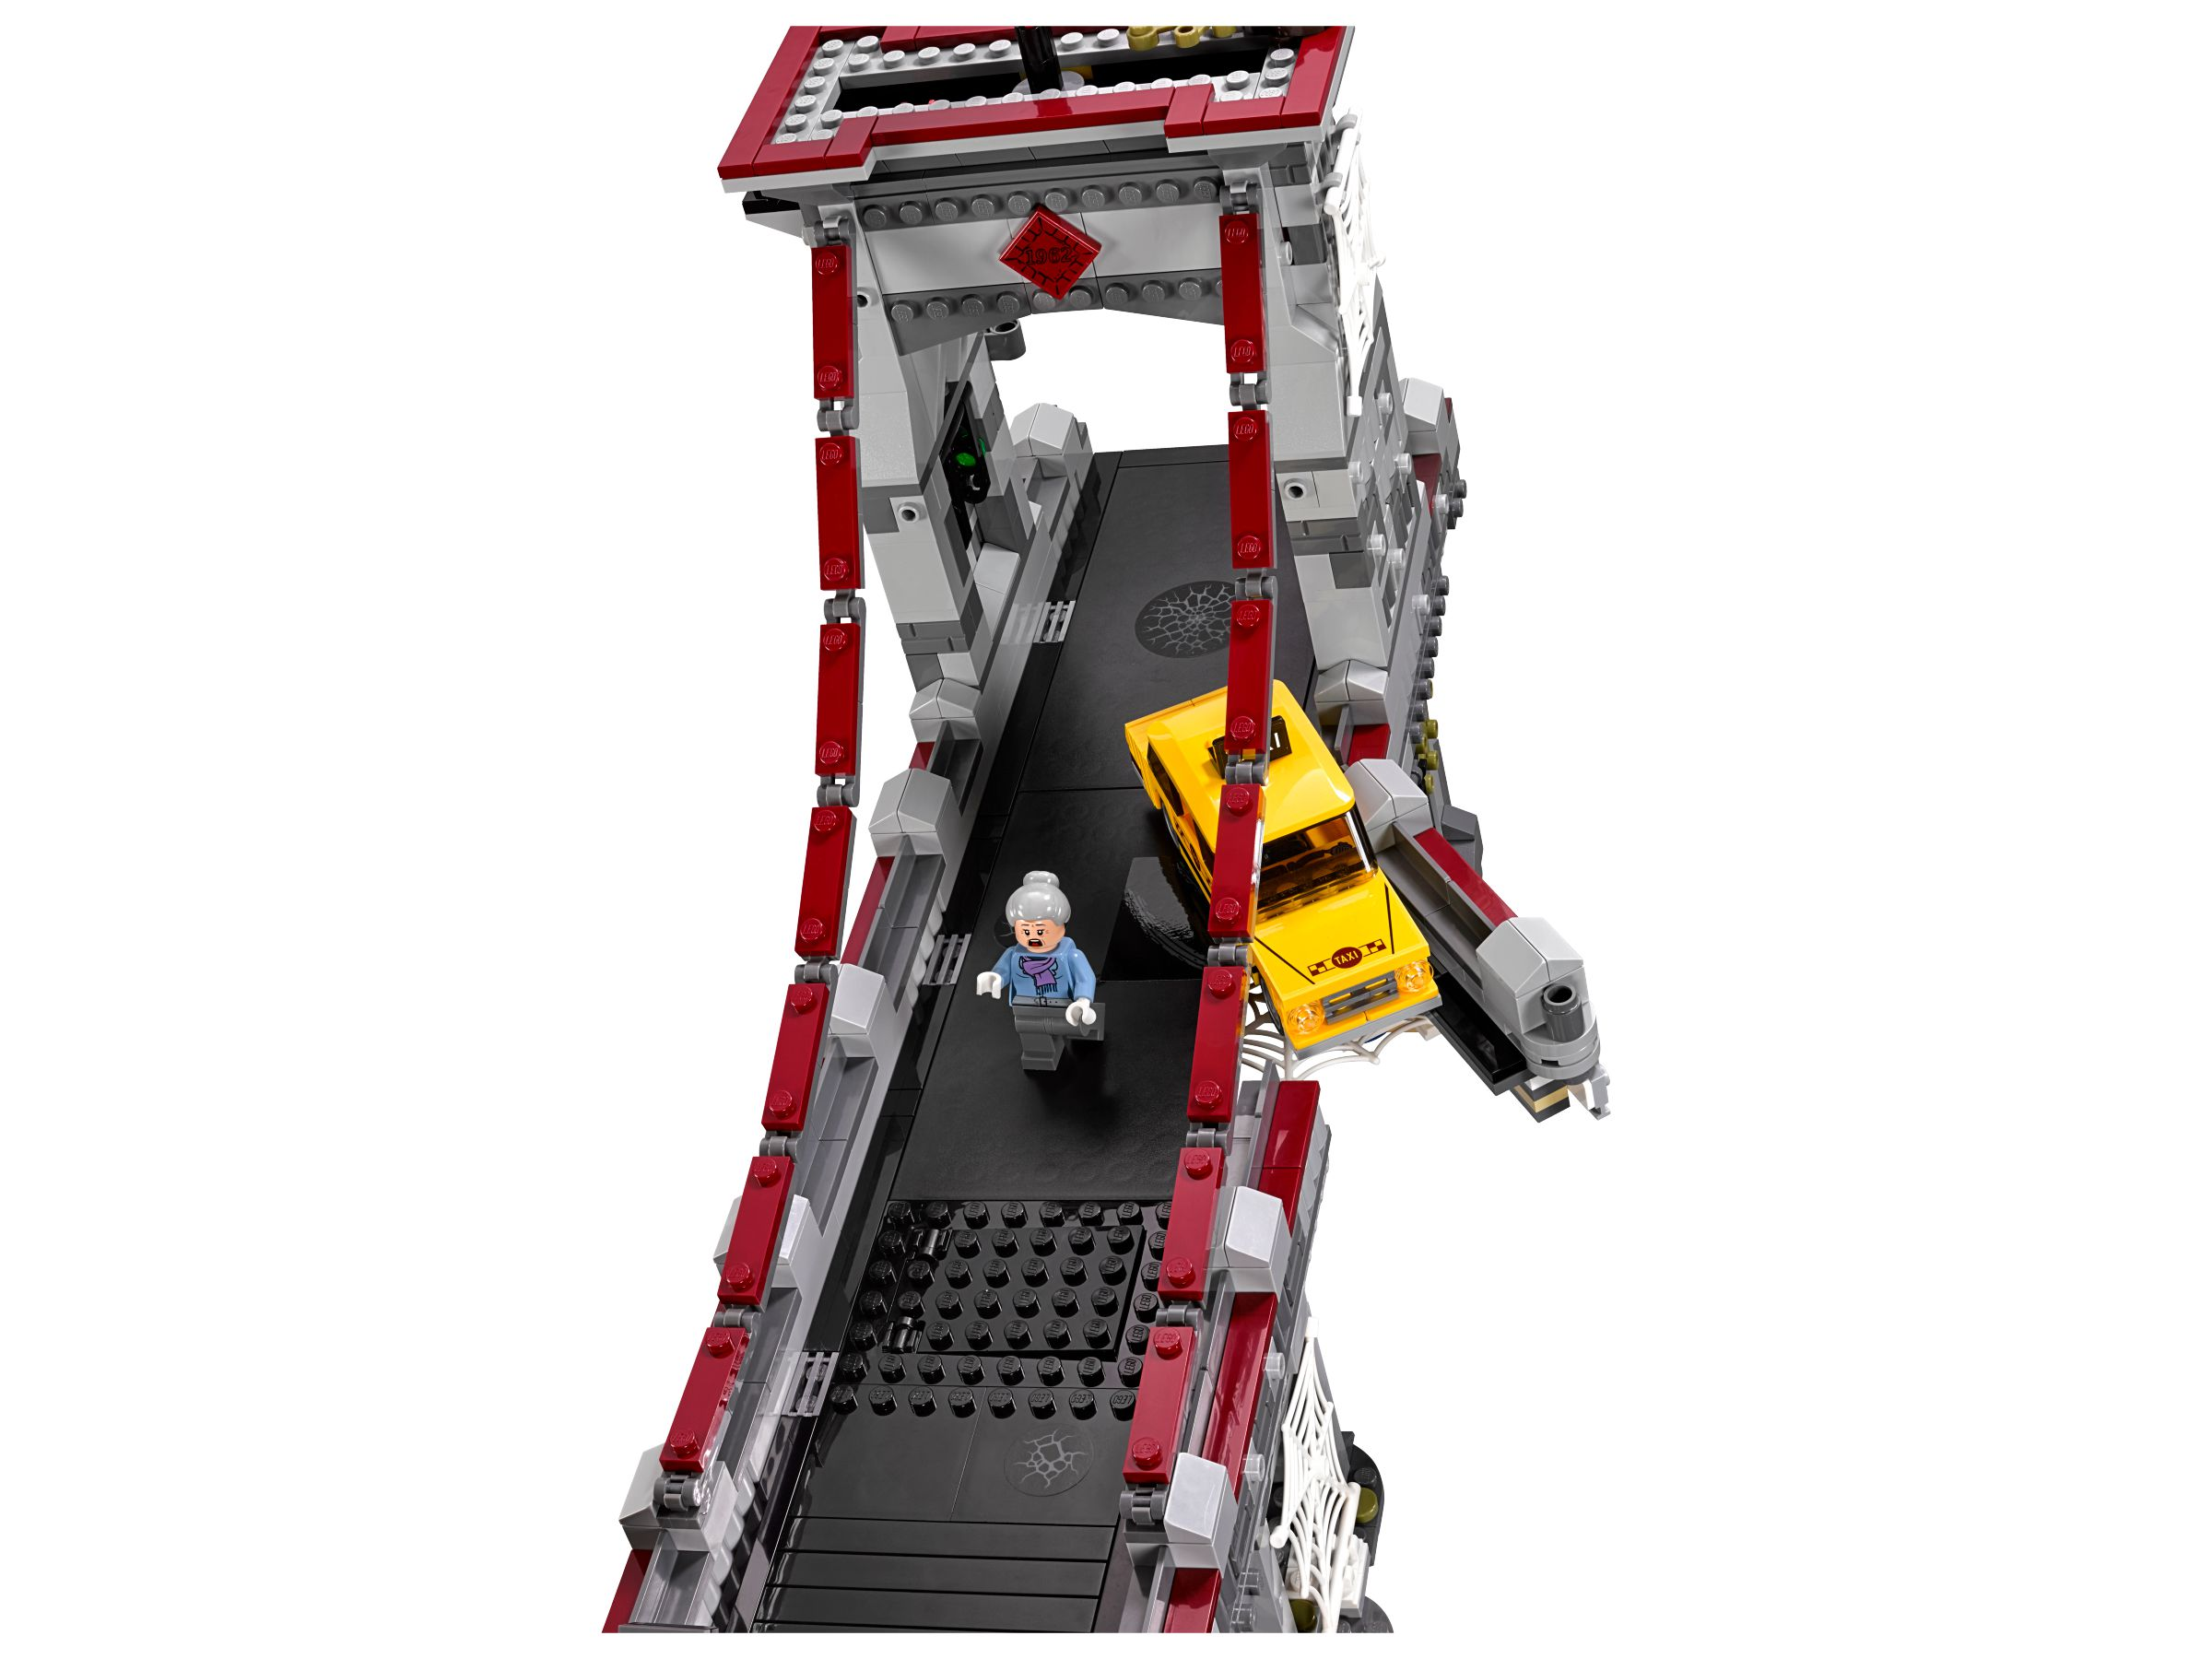 LEGO Super Heroes 76057 Spider-Man: Ultimatives Brückenduell der Web-Warriors LEGO_76057_alt9.jpg